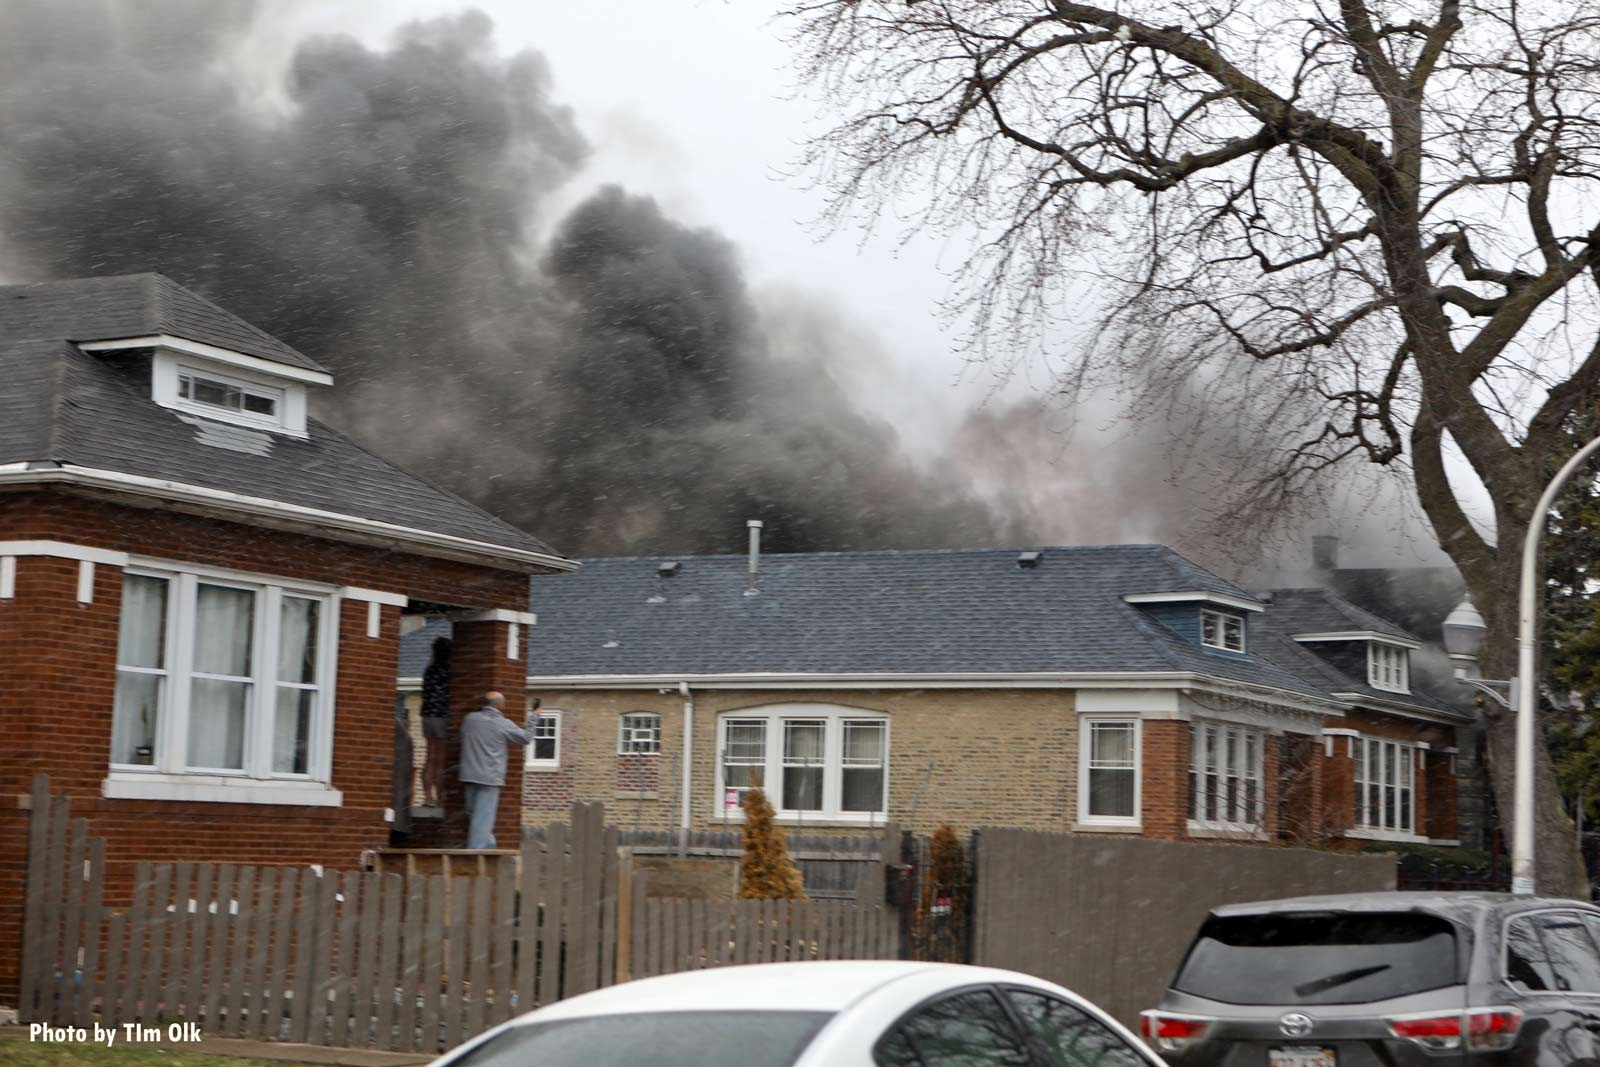 Smoke rises from the scene in Chicago